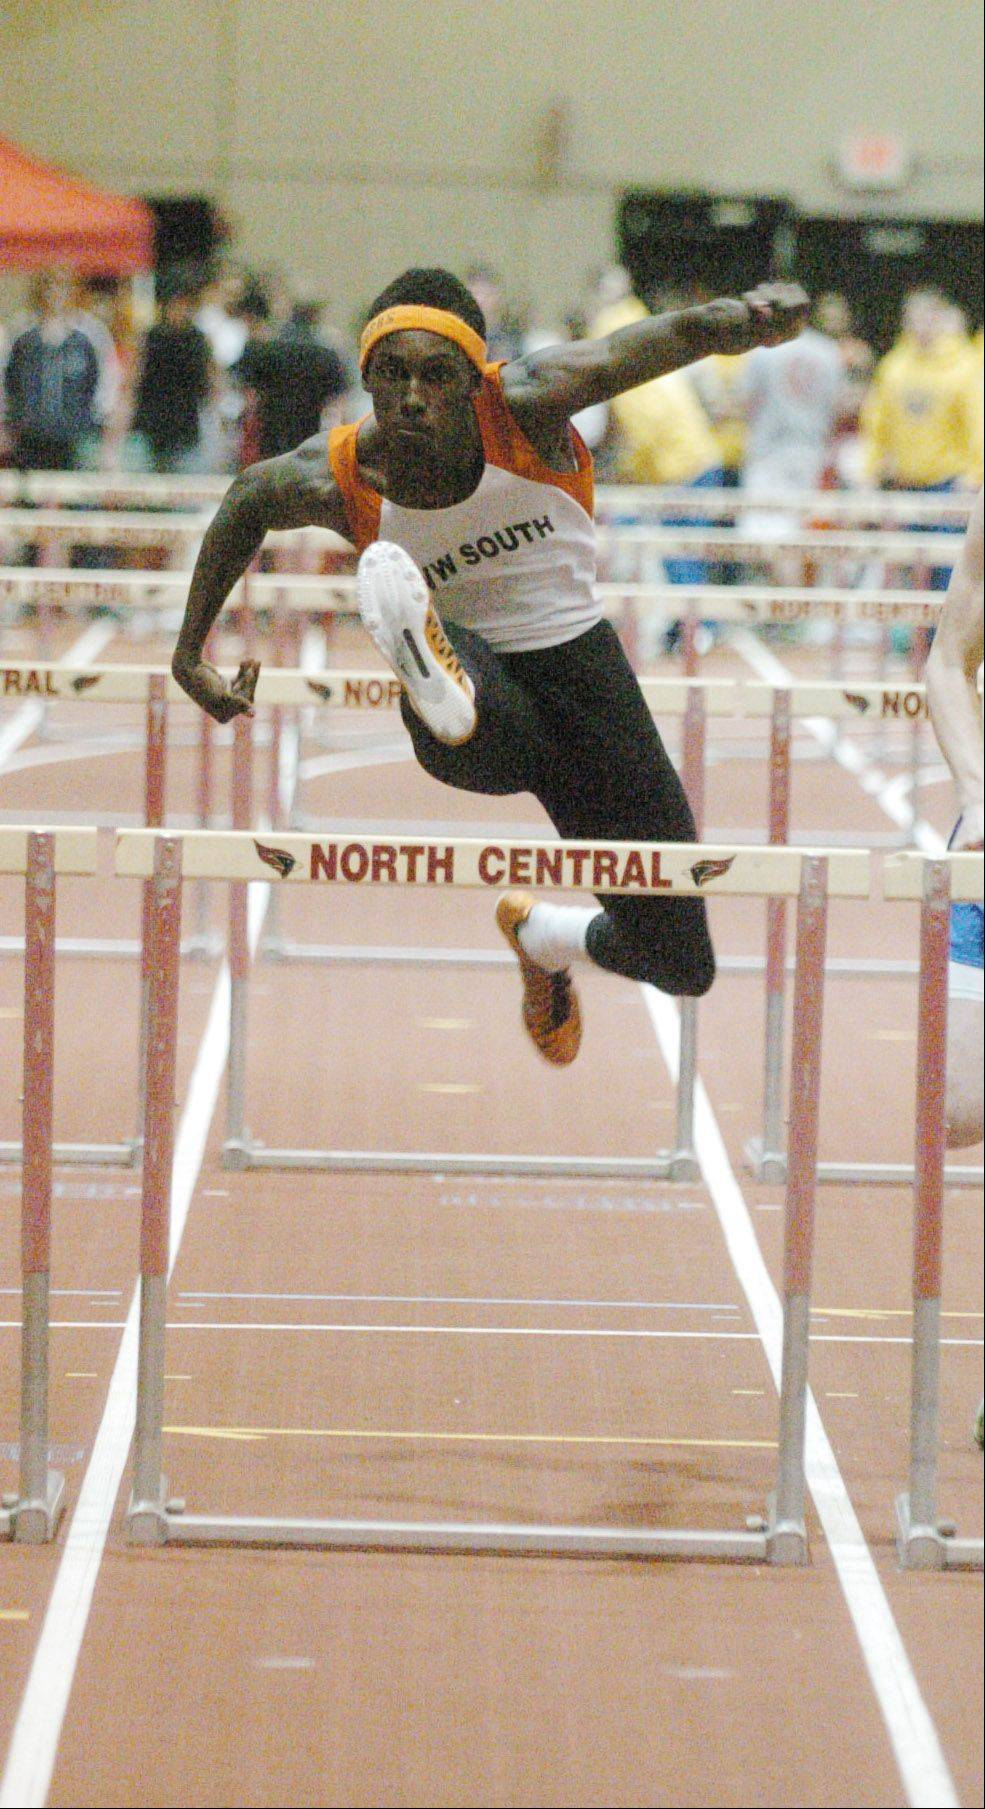 Phabian Clark of Wheaton Warrenville South in the 55 high hurdles during the DuPage Valley Conference indoor boys track meet in Naperville Friday.